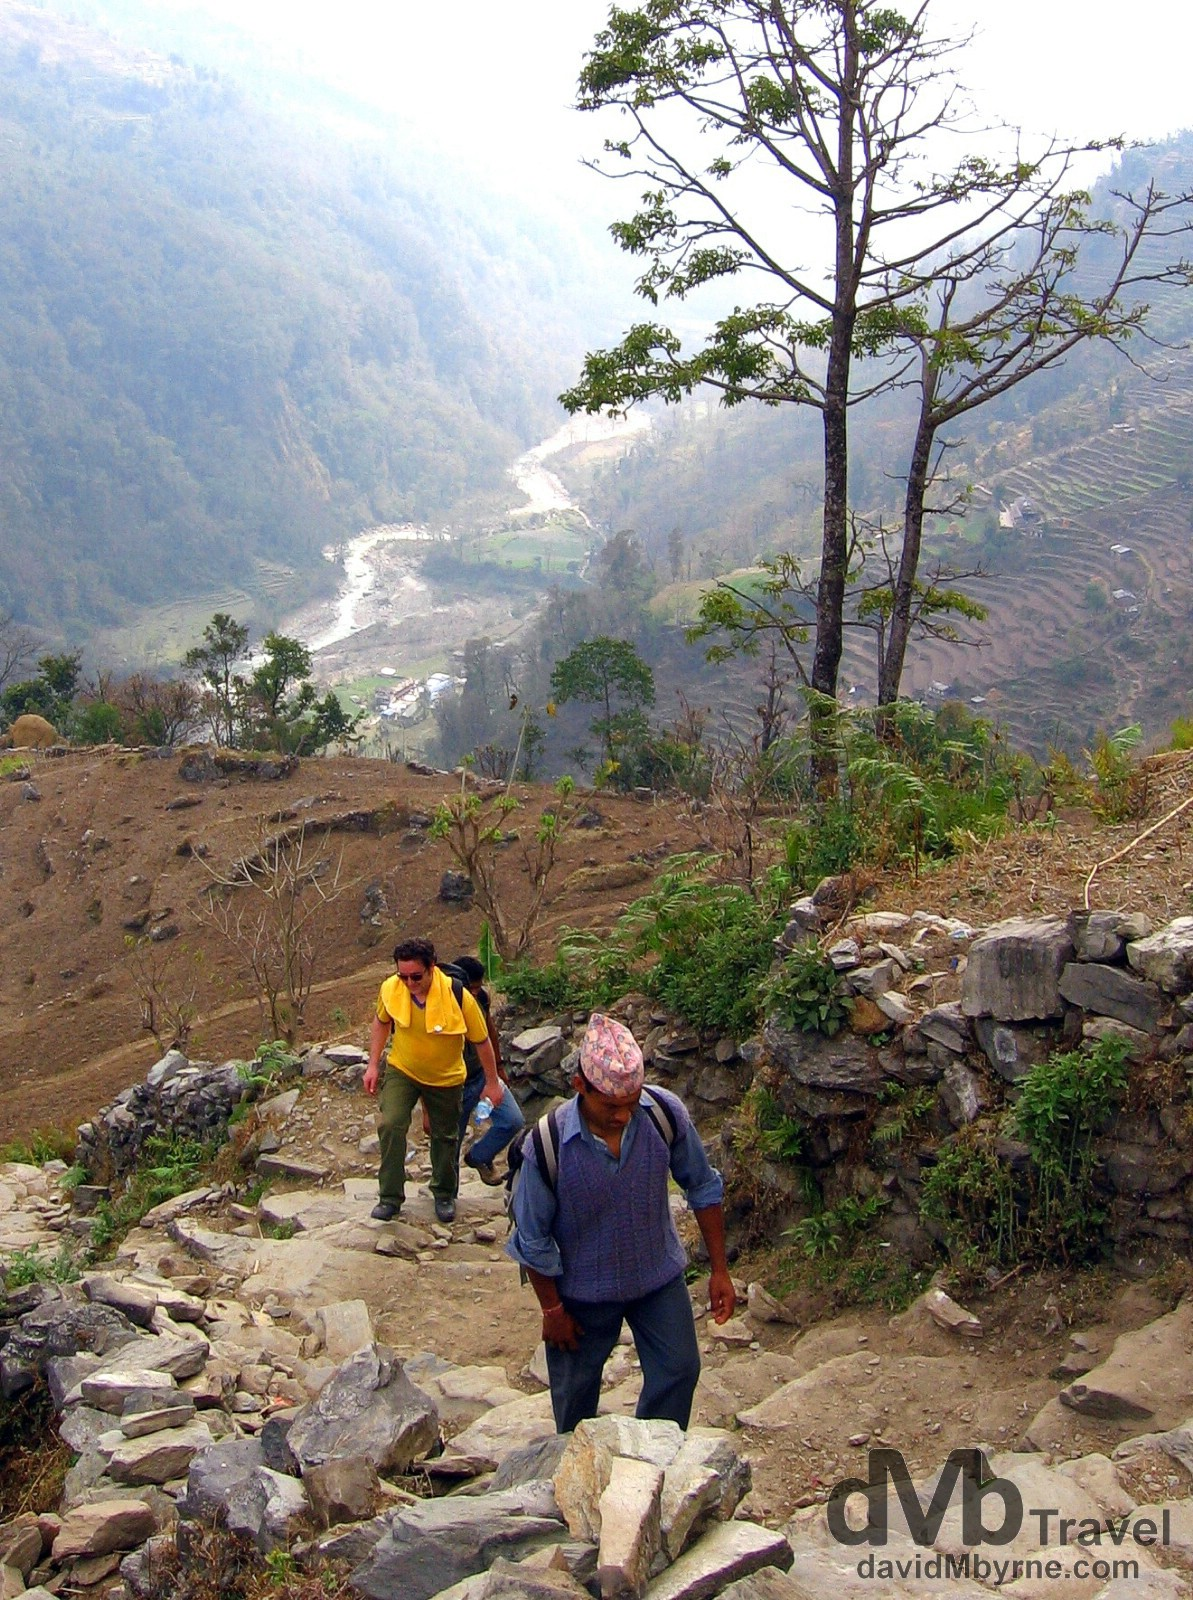 On the trail from Birethanti to Ghandruk, Annapurna Conservation Area, western Nepal. March 10th, 2008.